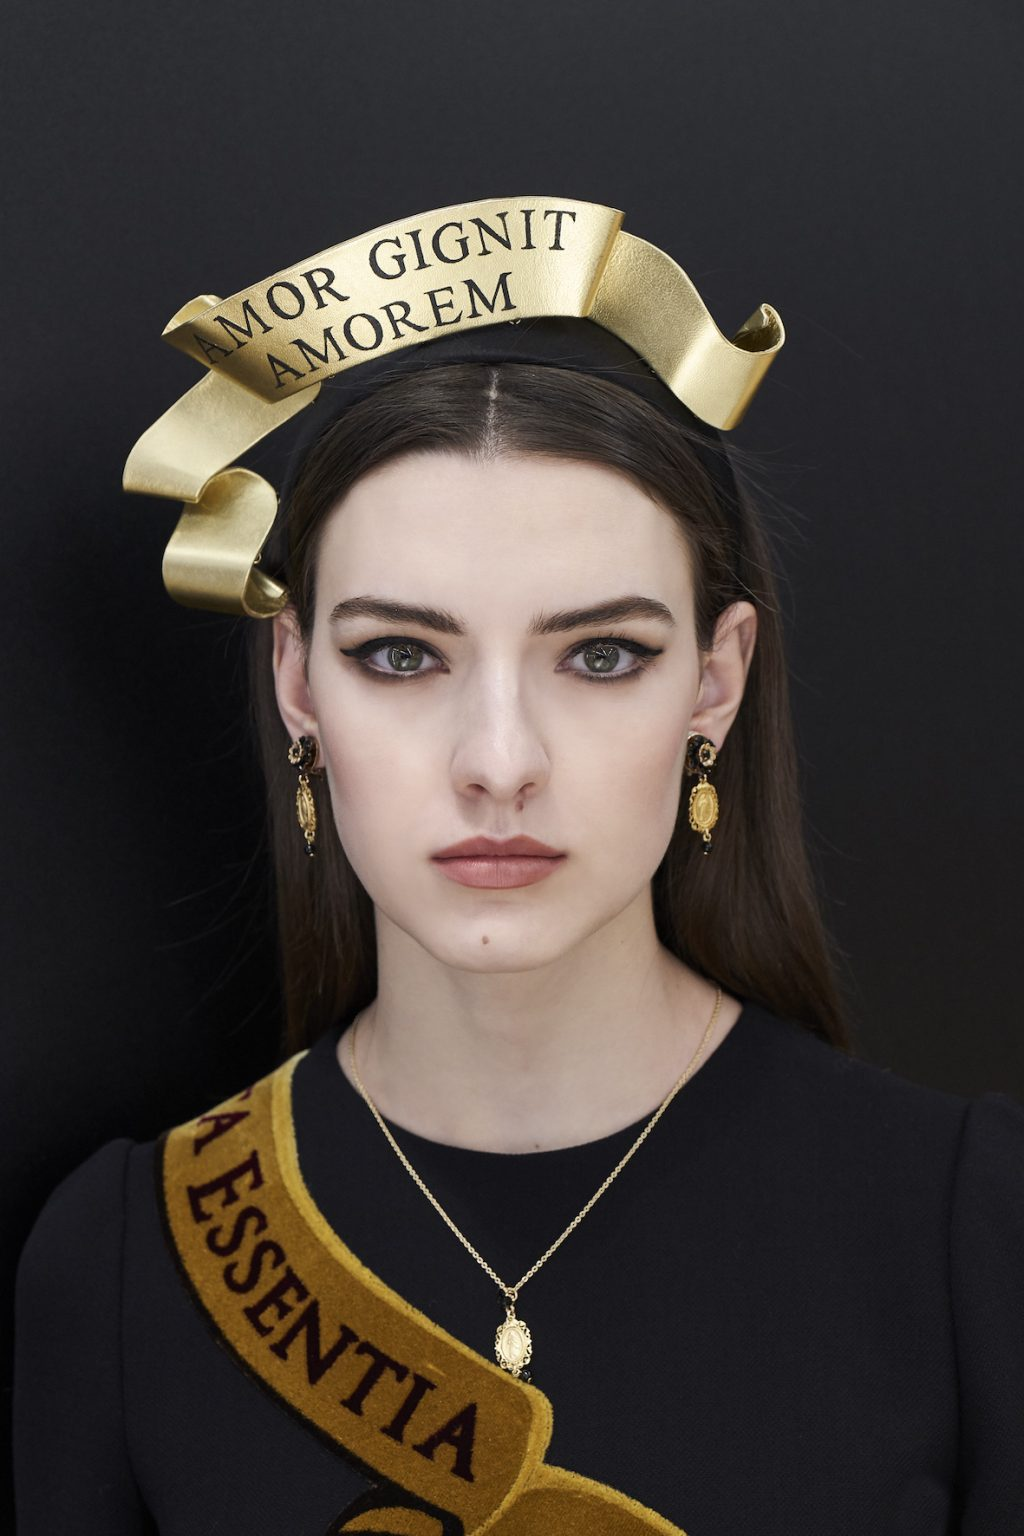 Dolce & Gabbana Reveals (Exactly) What It Took to Create This MFW Look